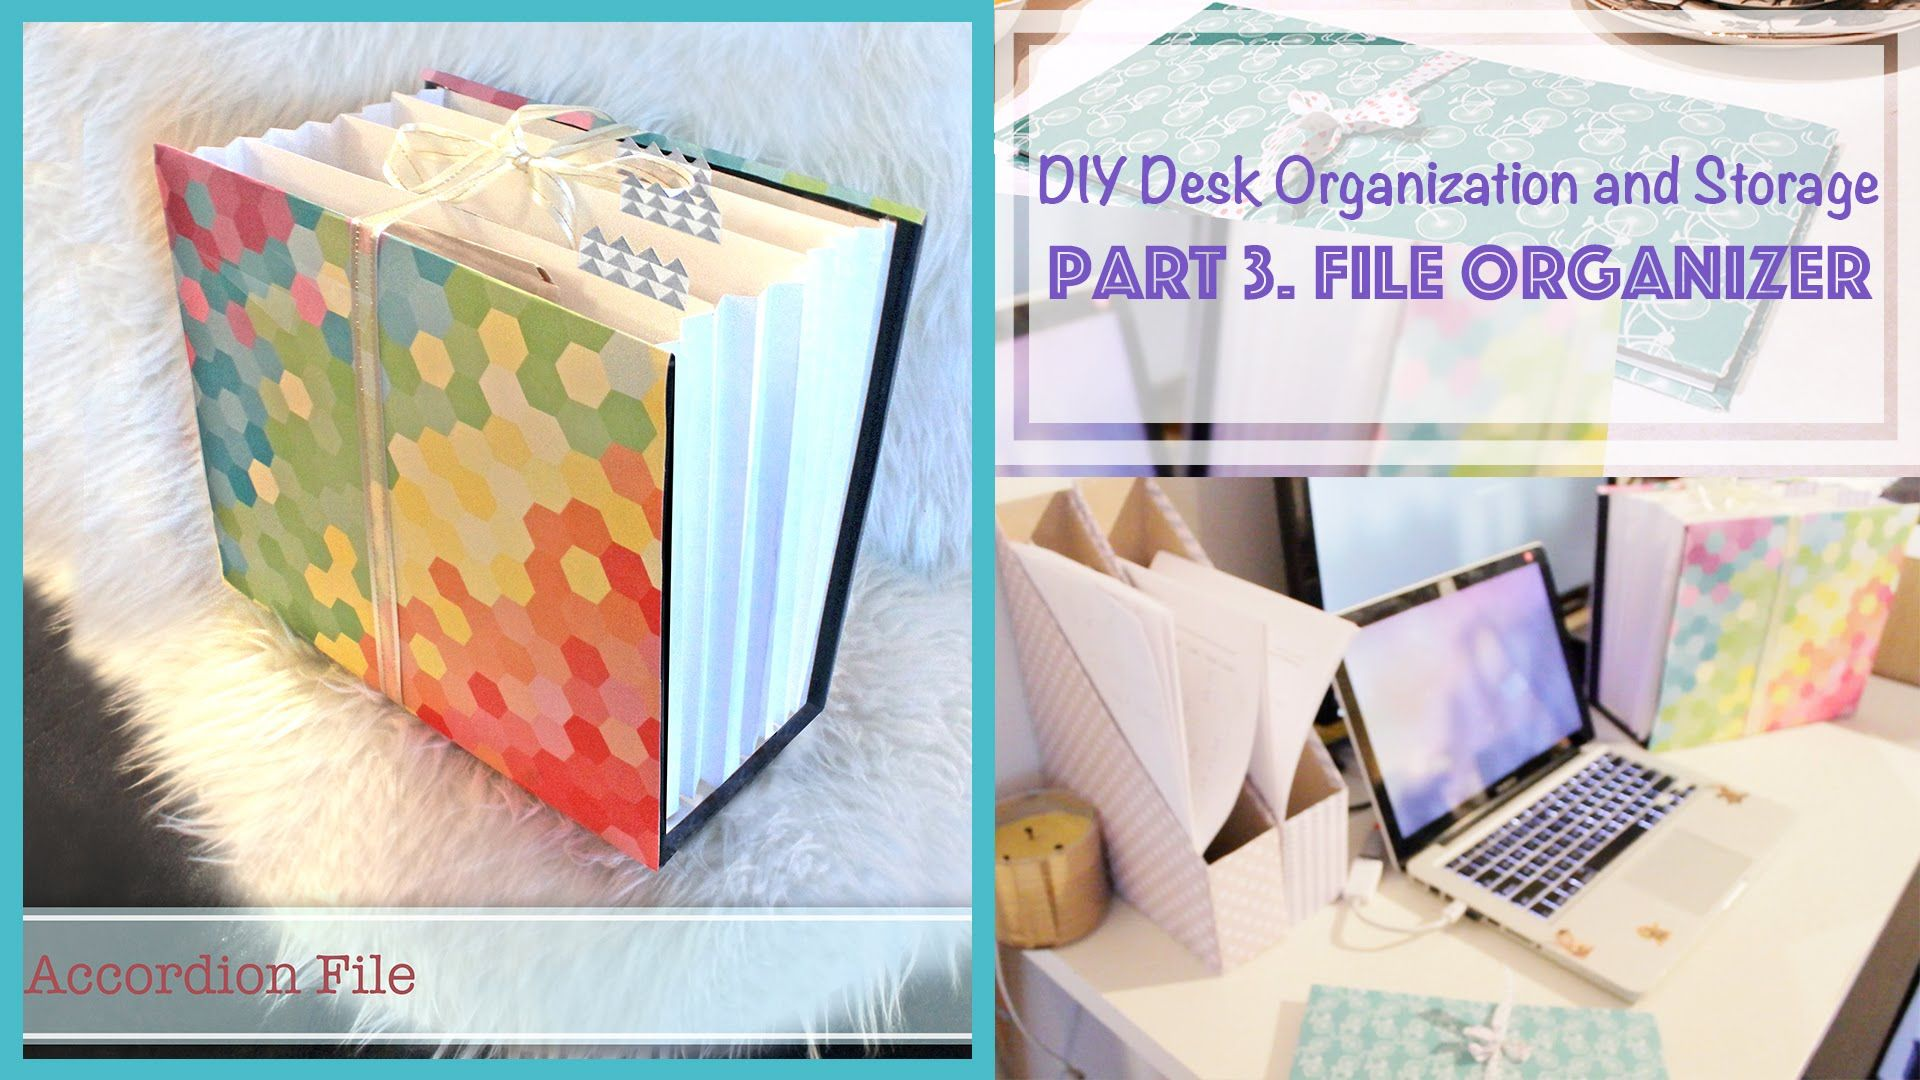 DIY File Organizer from Recycled Box Desk Organization